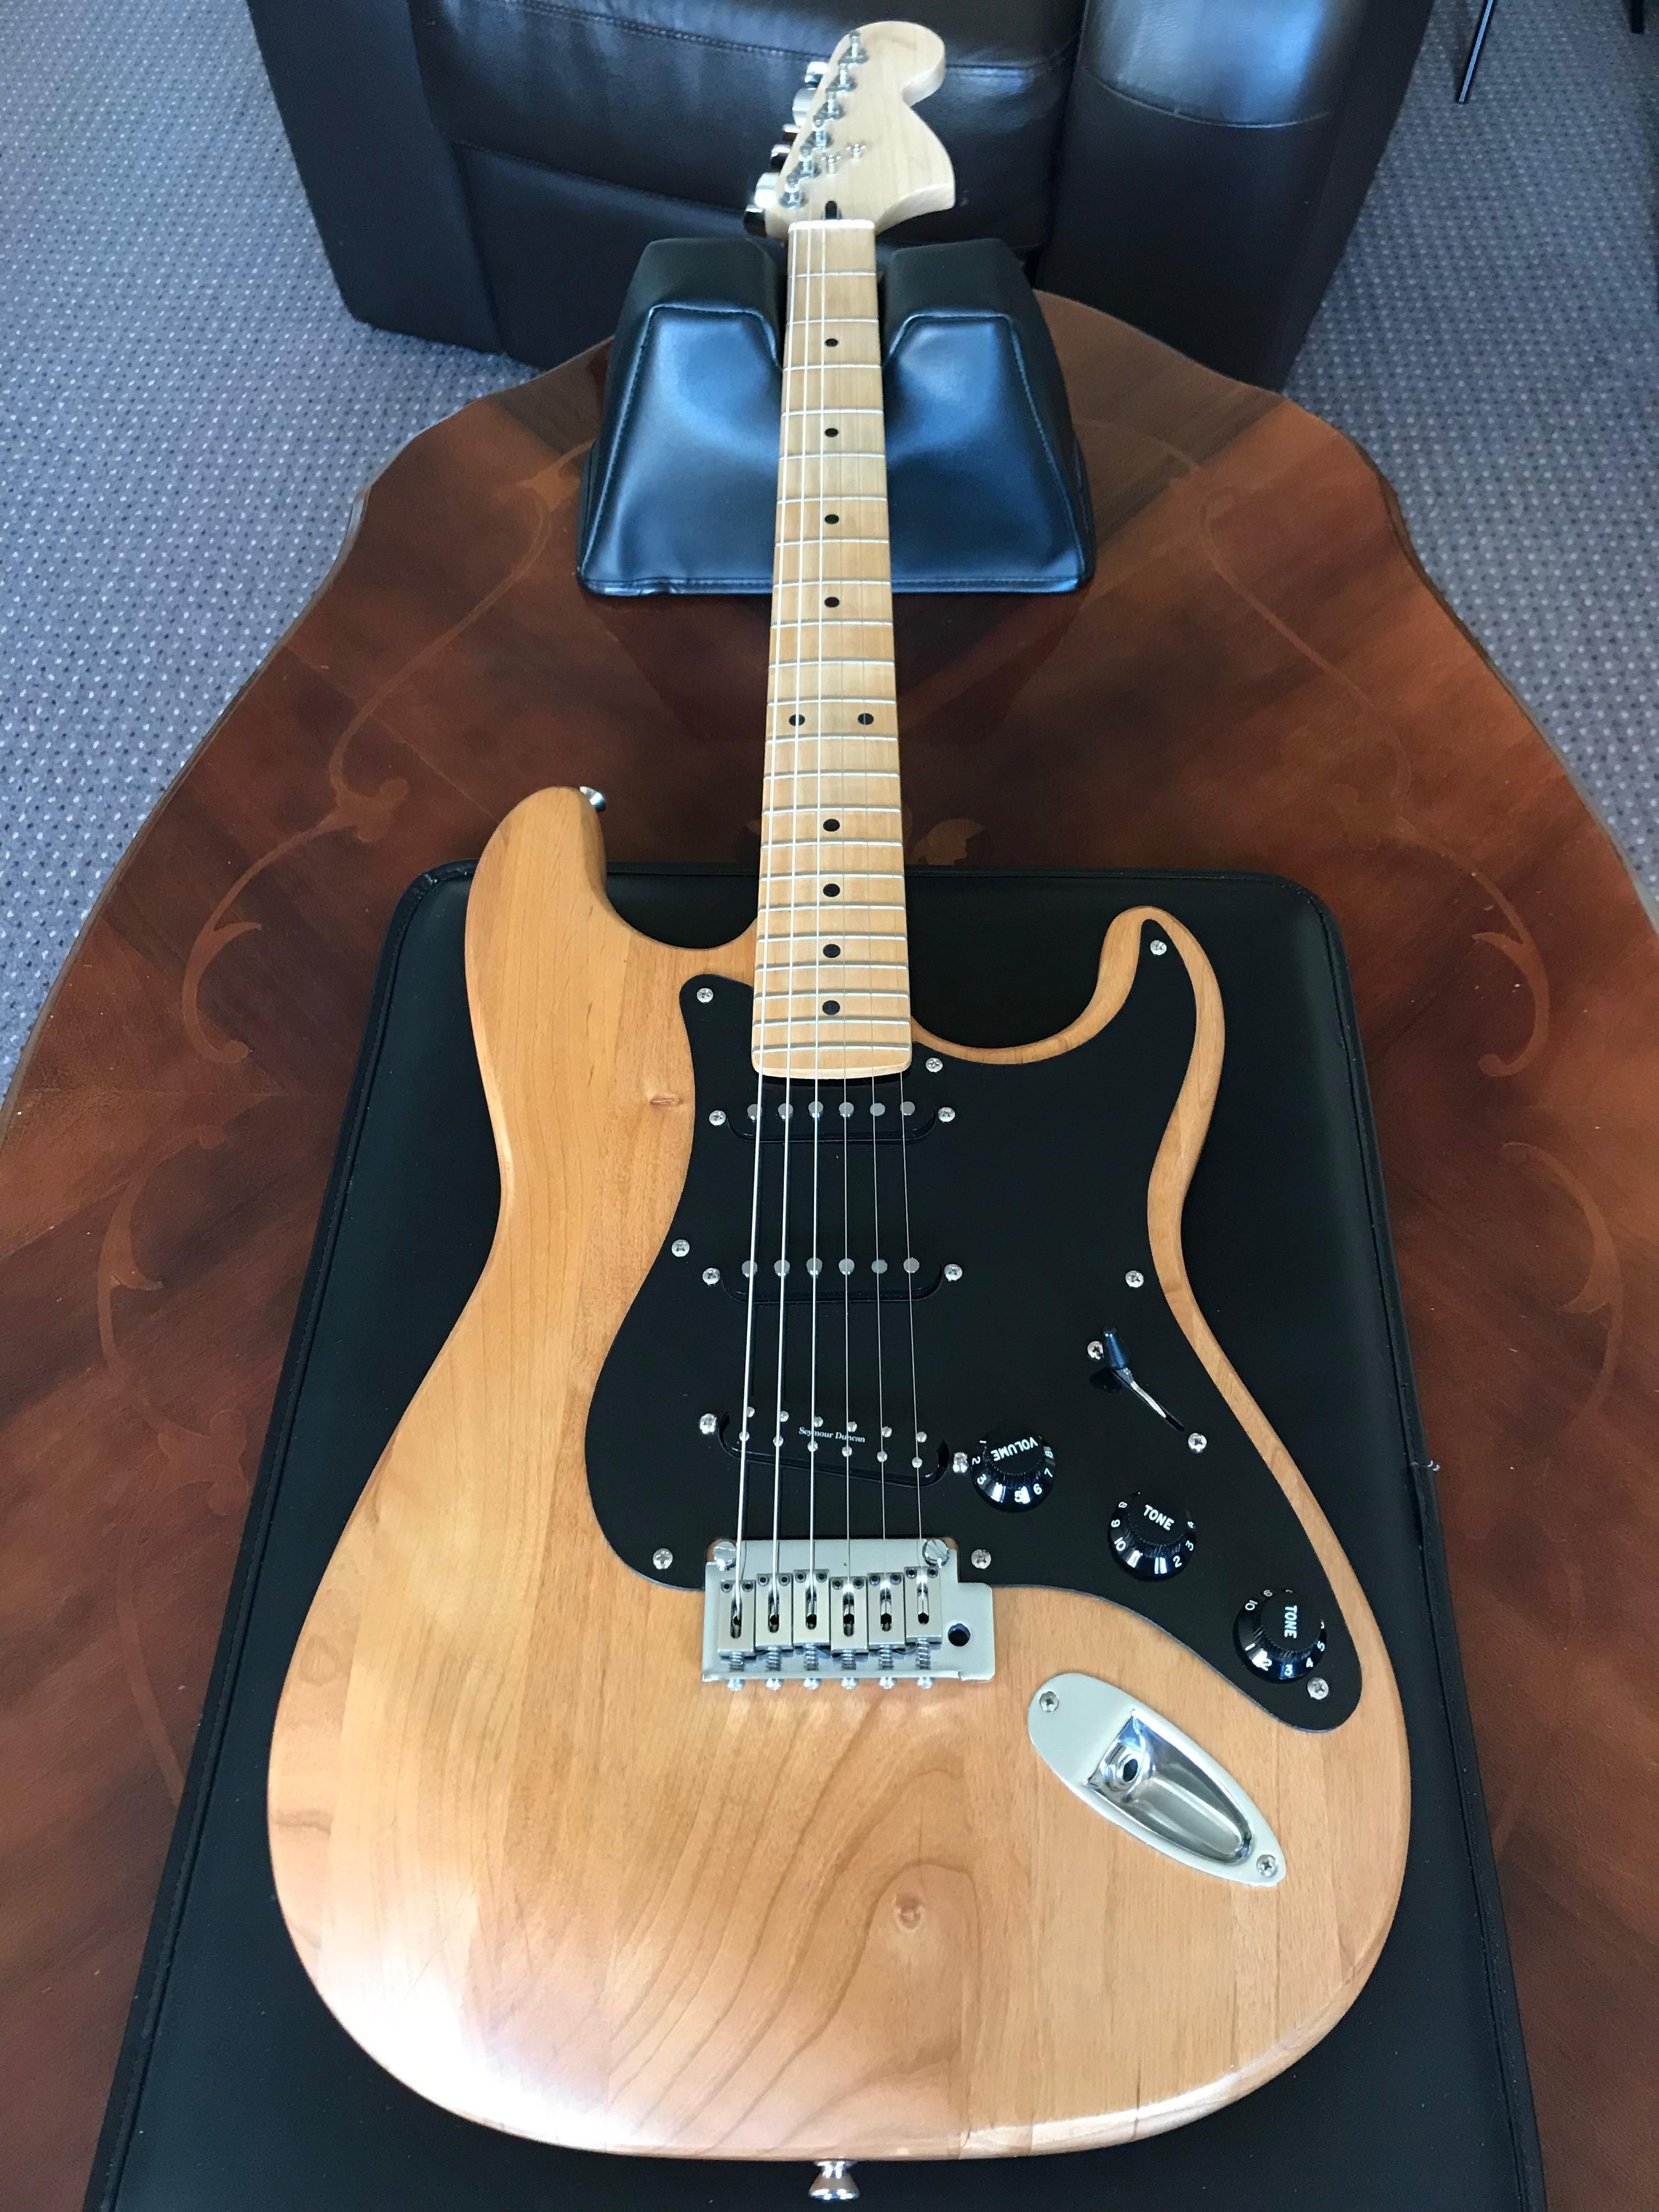 Rebuilding my first guitar (Squire Strat) - Fitted a Seymour Duncan